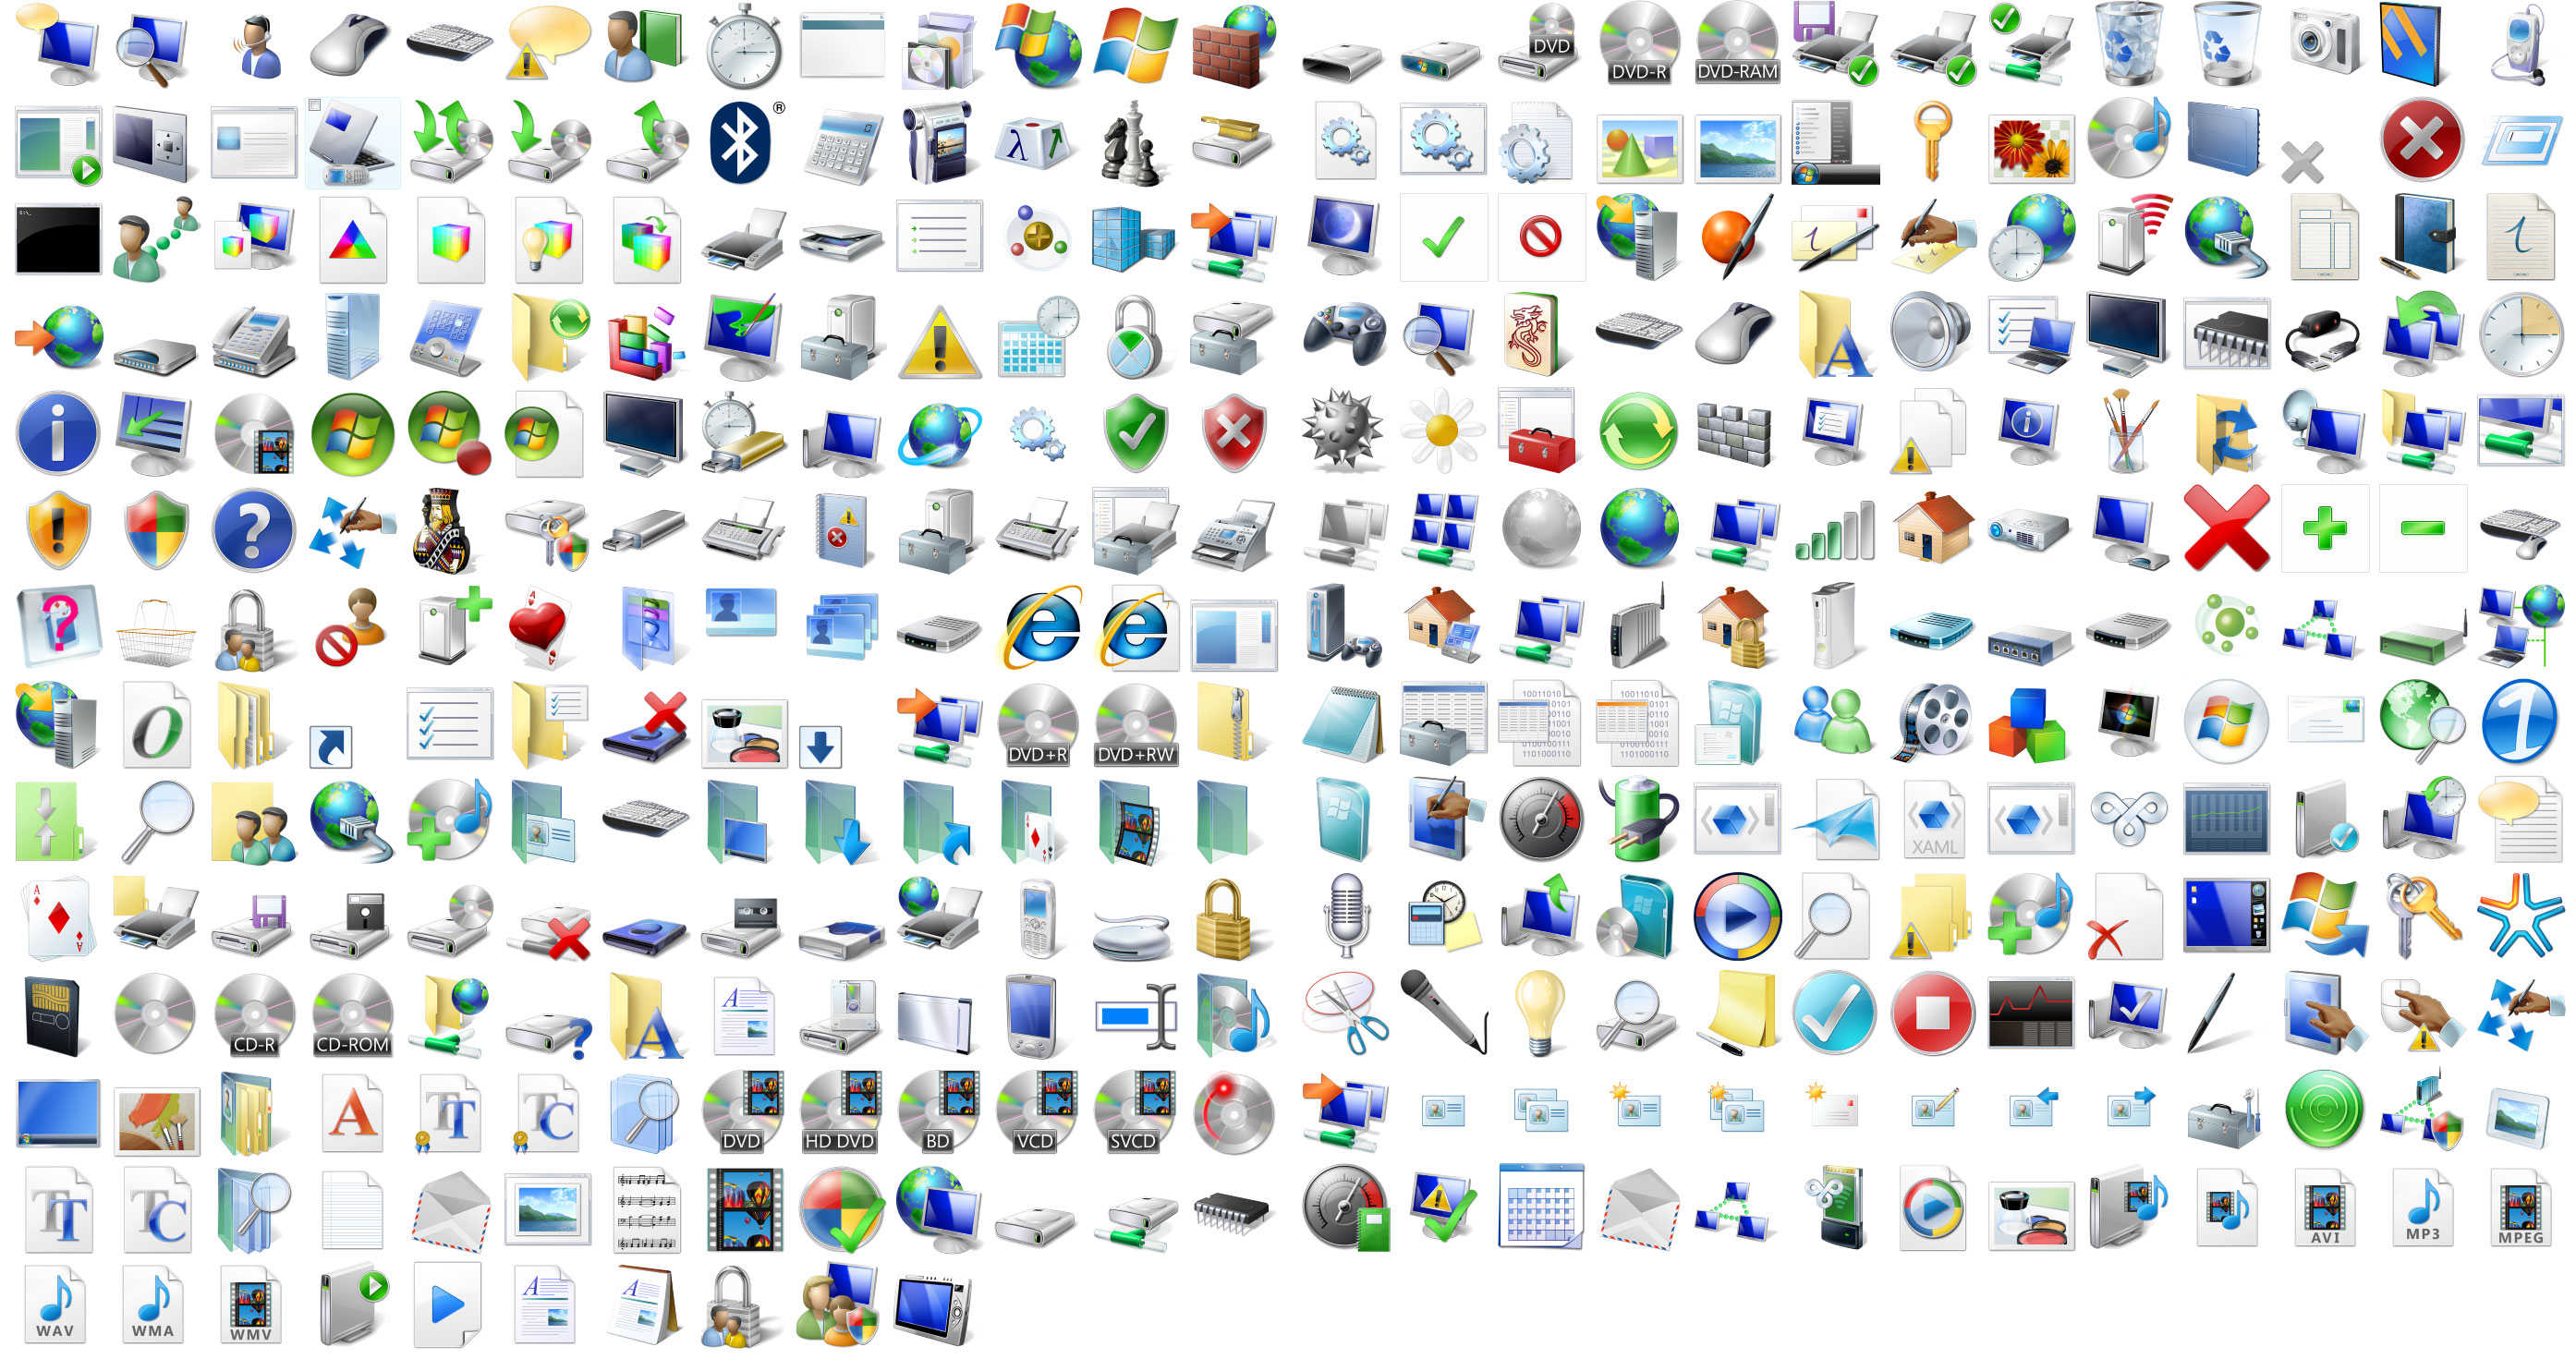 14 Classic Windows Icon Pack Images